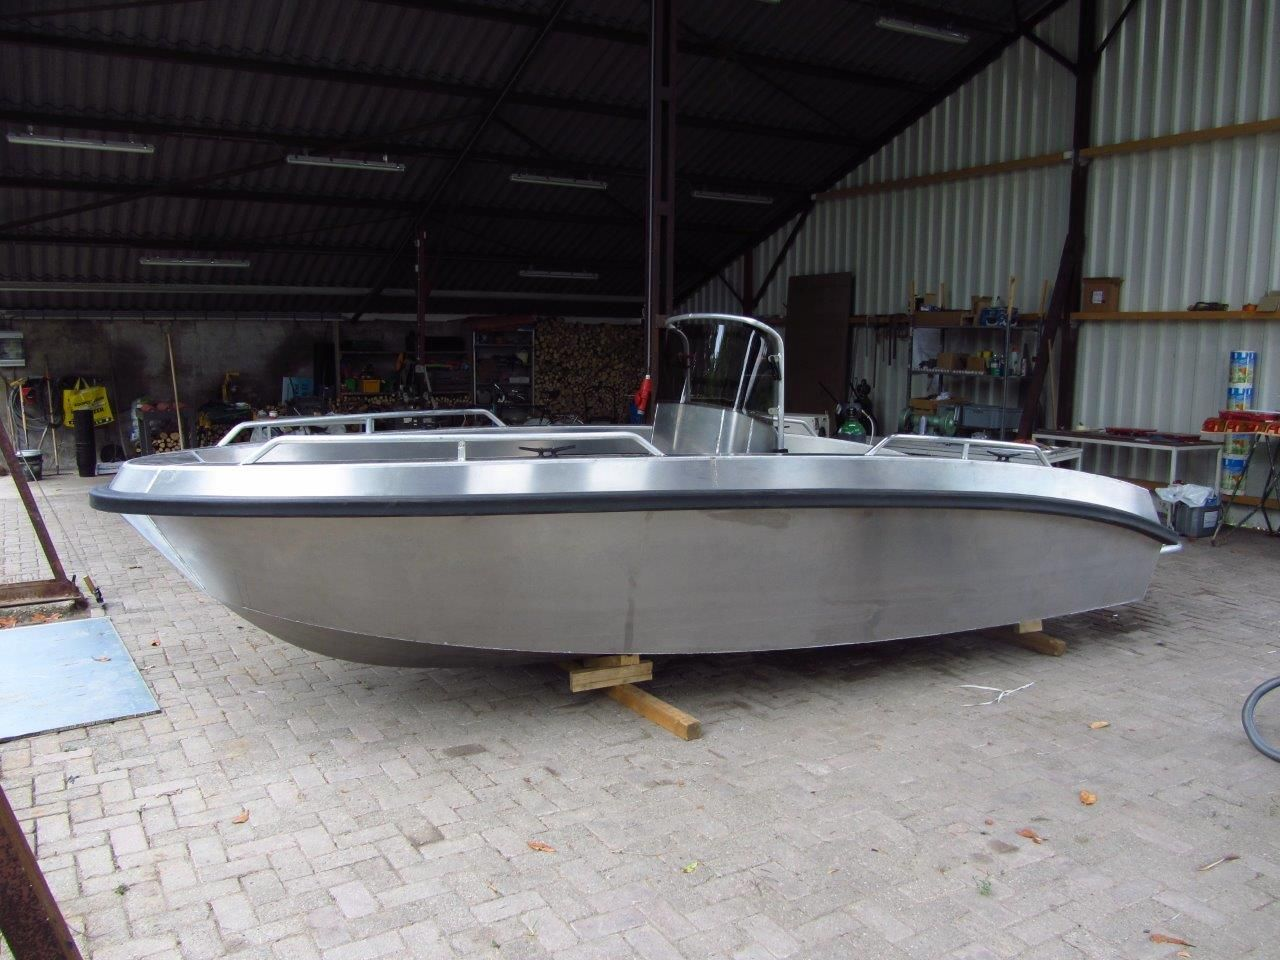 Home built jet dinghy s from new zealand boat design forums - Boat Trim Tabs Http Www Boatpartsandsupplies Com Boattrimtabs